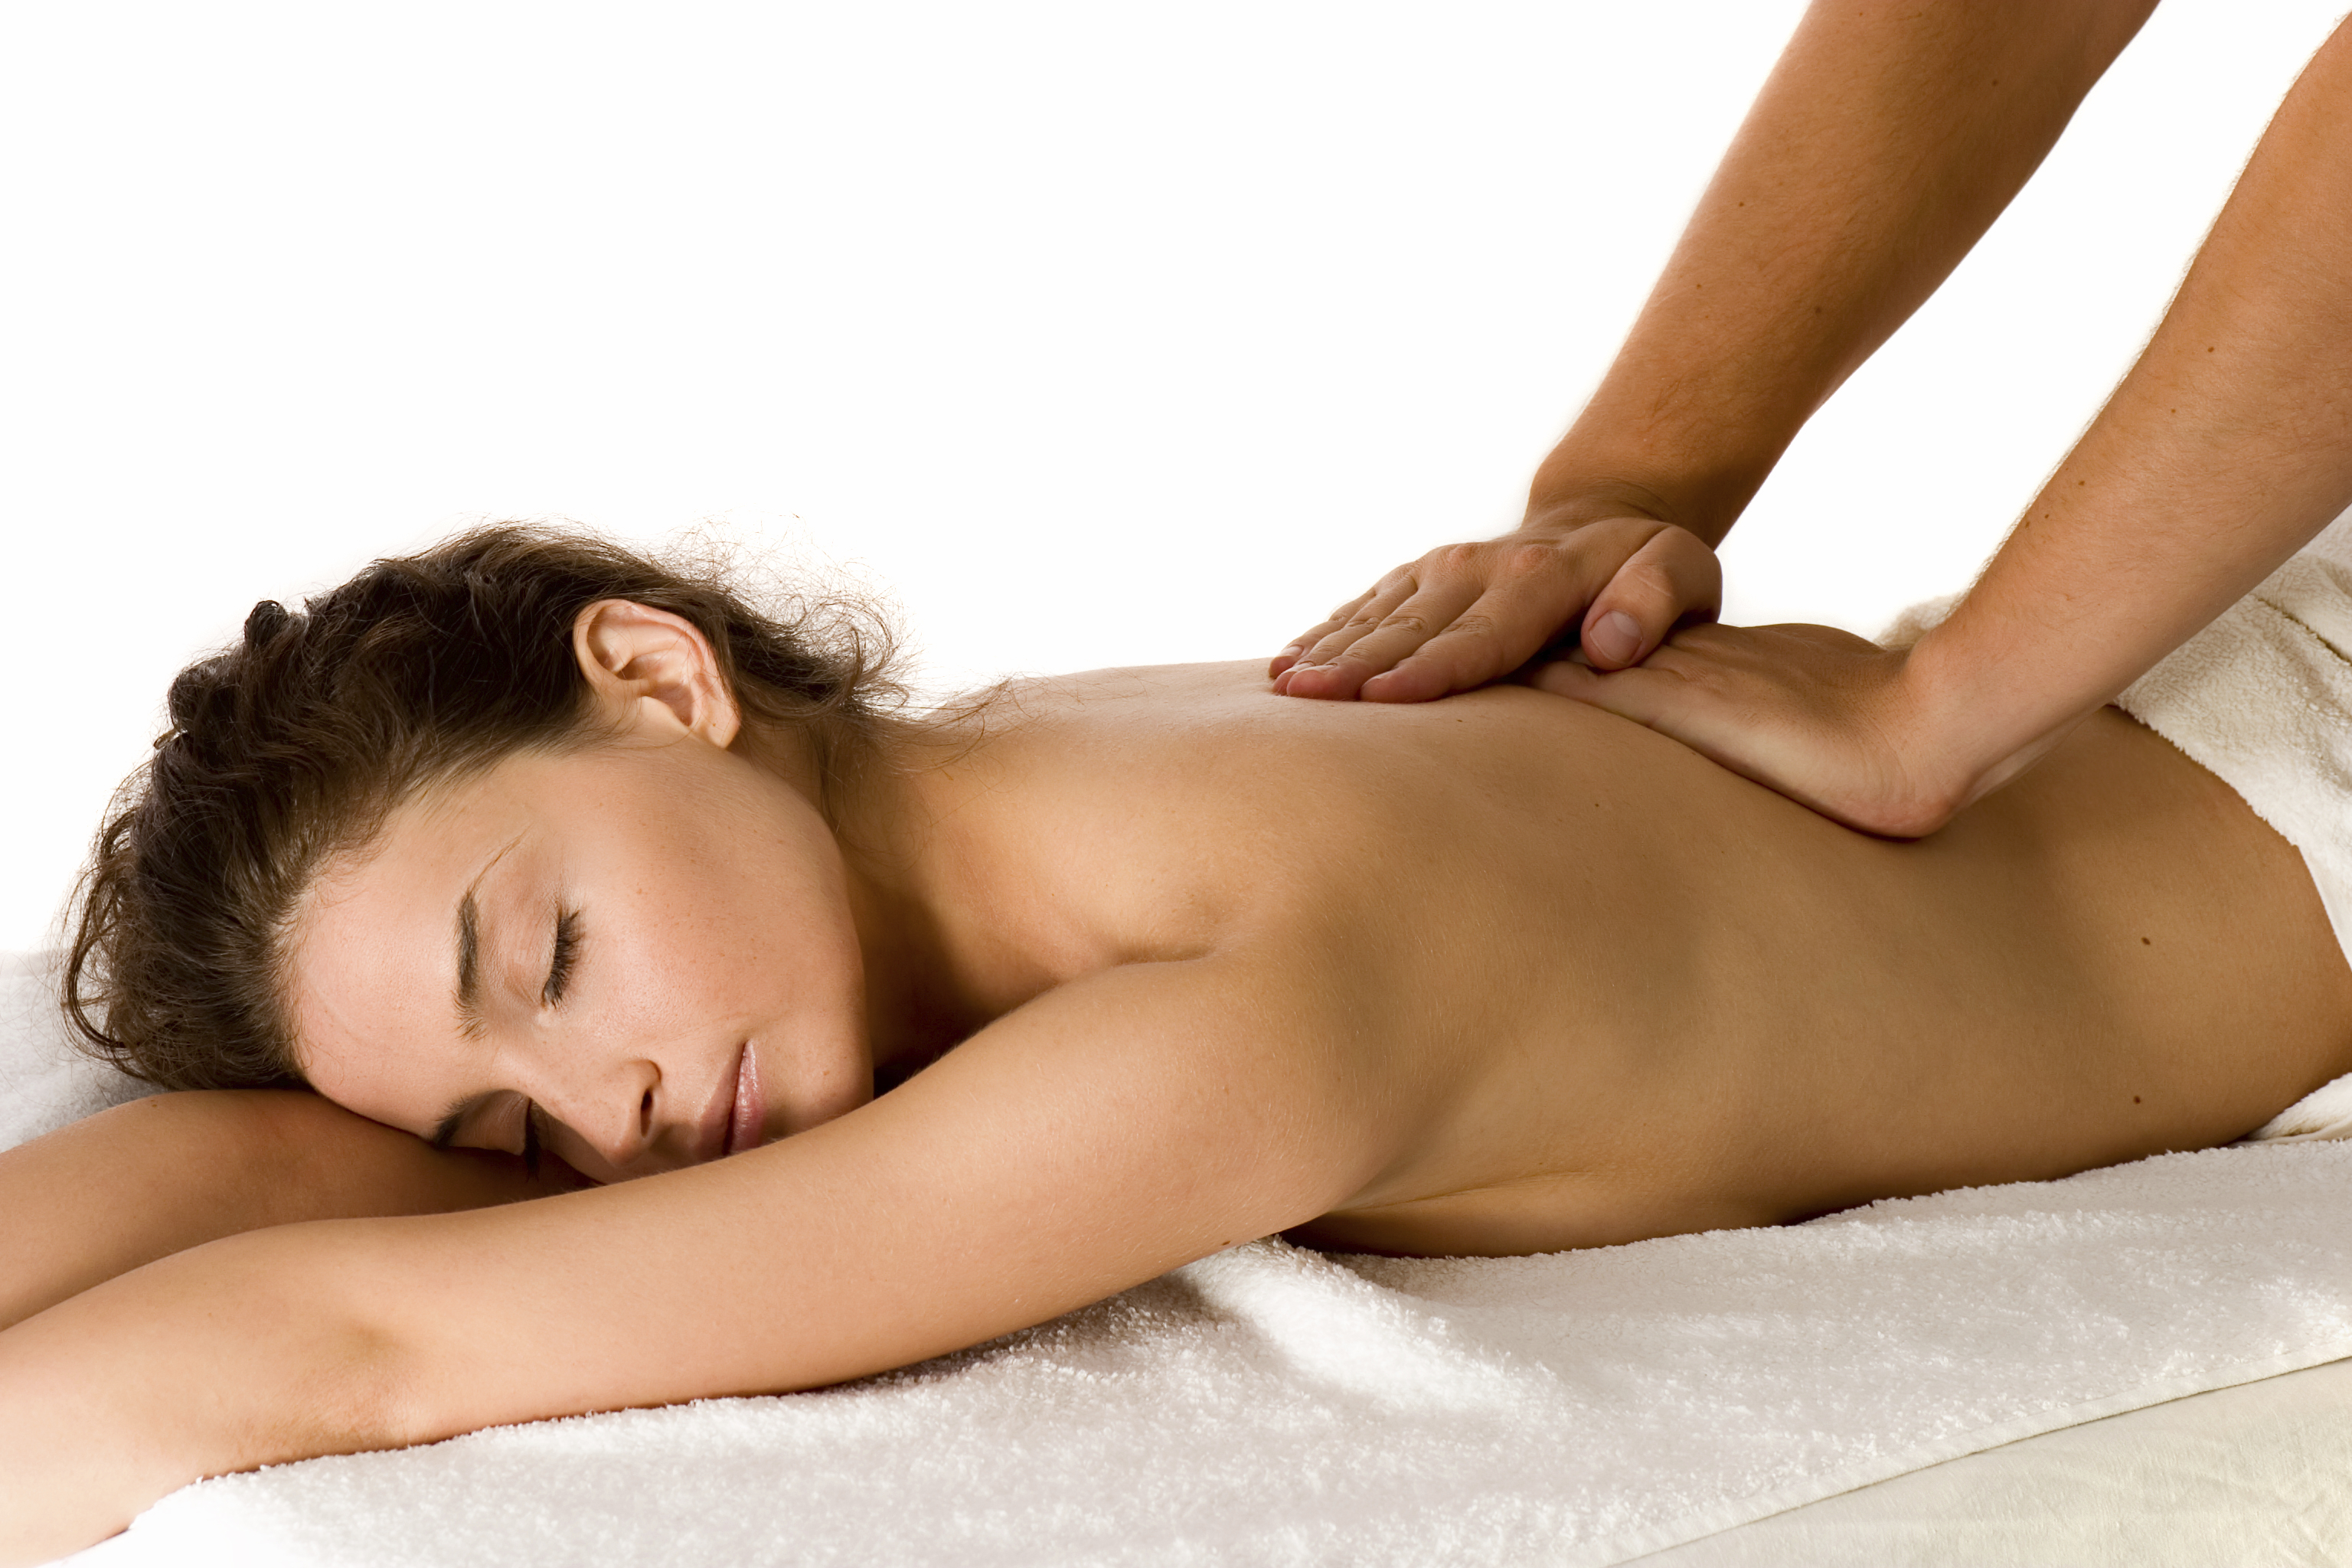 Massage Therapy Session at 50% Discount Offered by RC Spa and Beauty Center  in Rancho Cucamonga